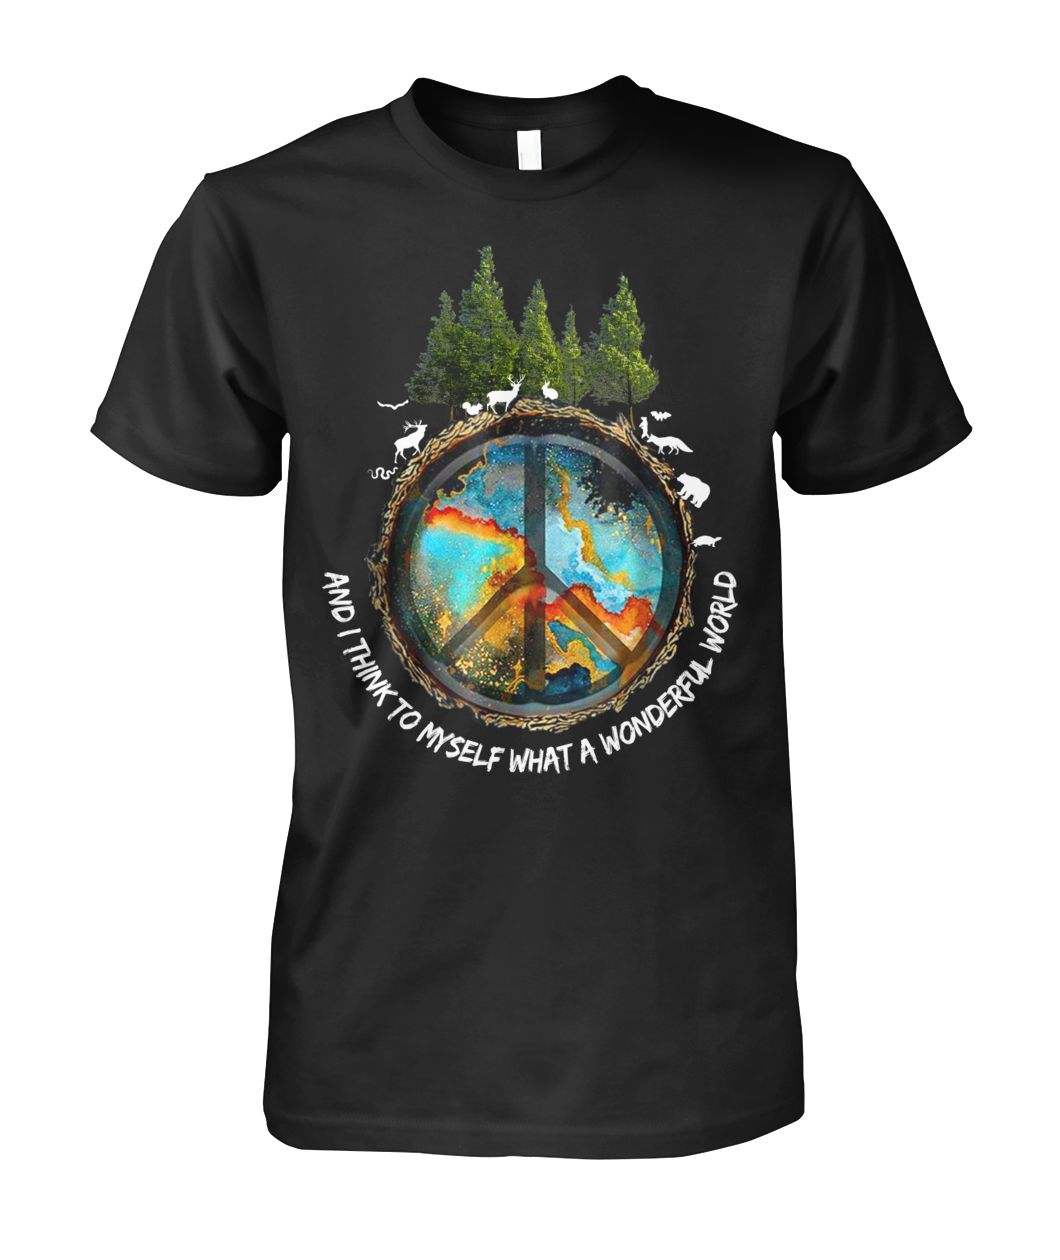 The earth's environment and I think to myself what a wonderful world unisex shirt